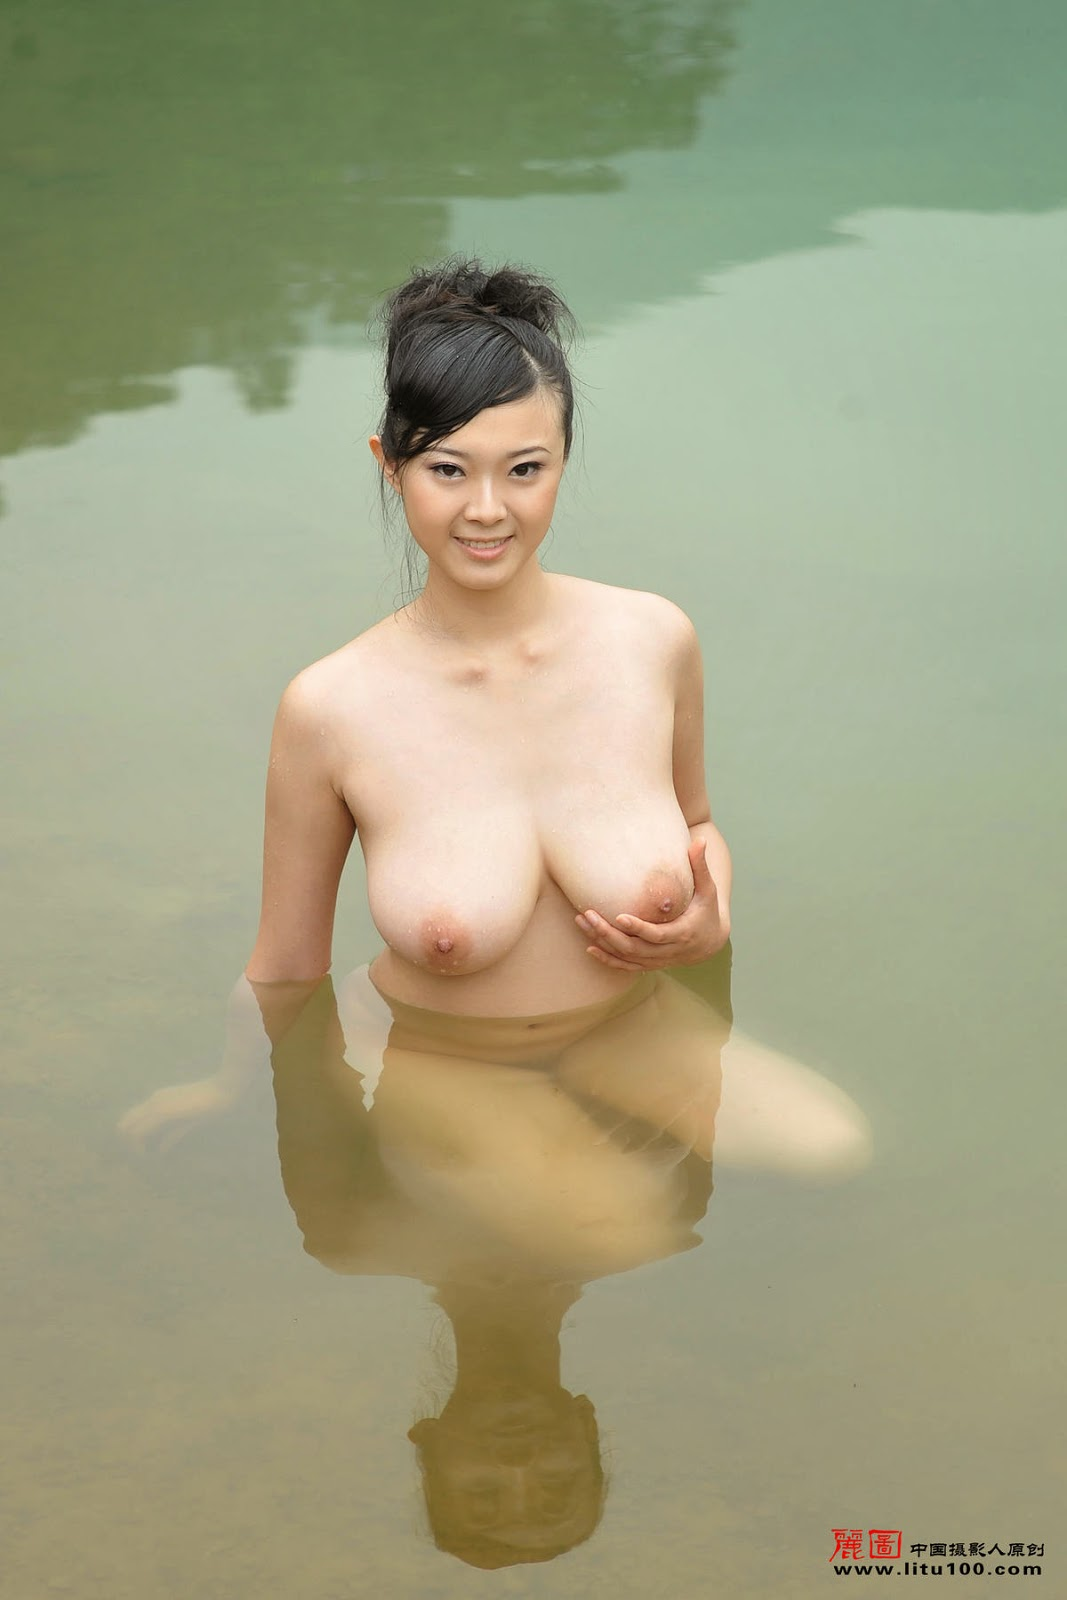 Chinese Nude Model Bing Yi Litu100  Chinesenudeart Photos - Chinese -5010